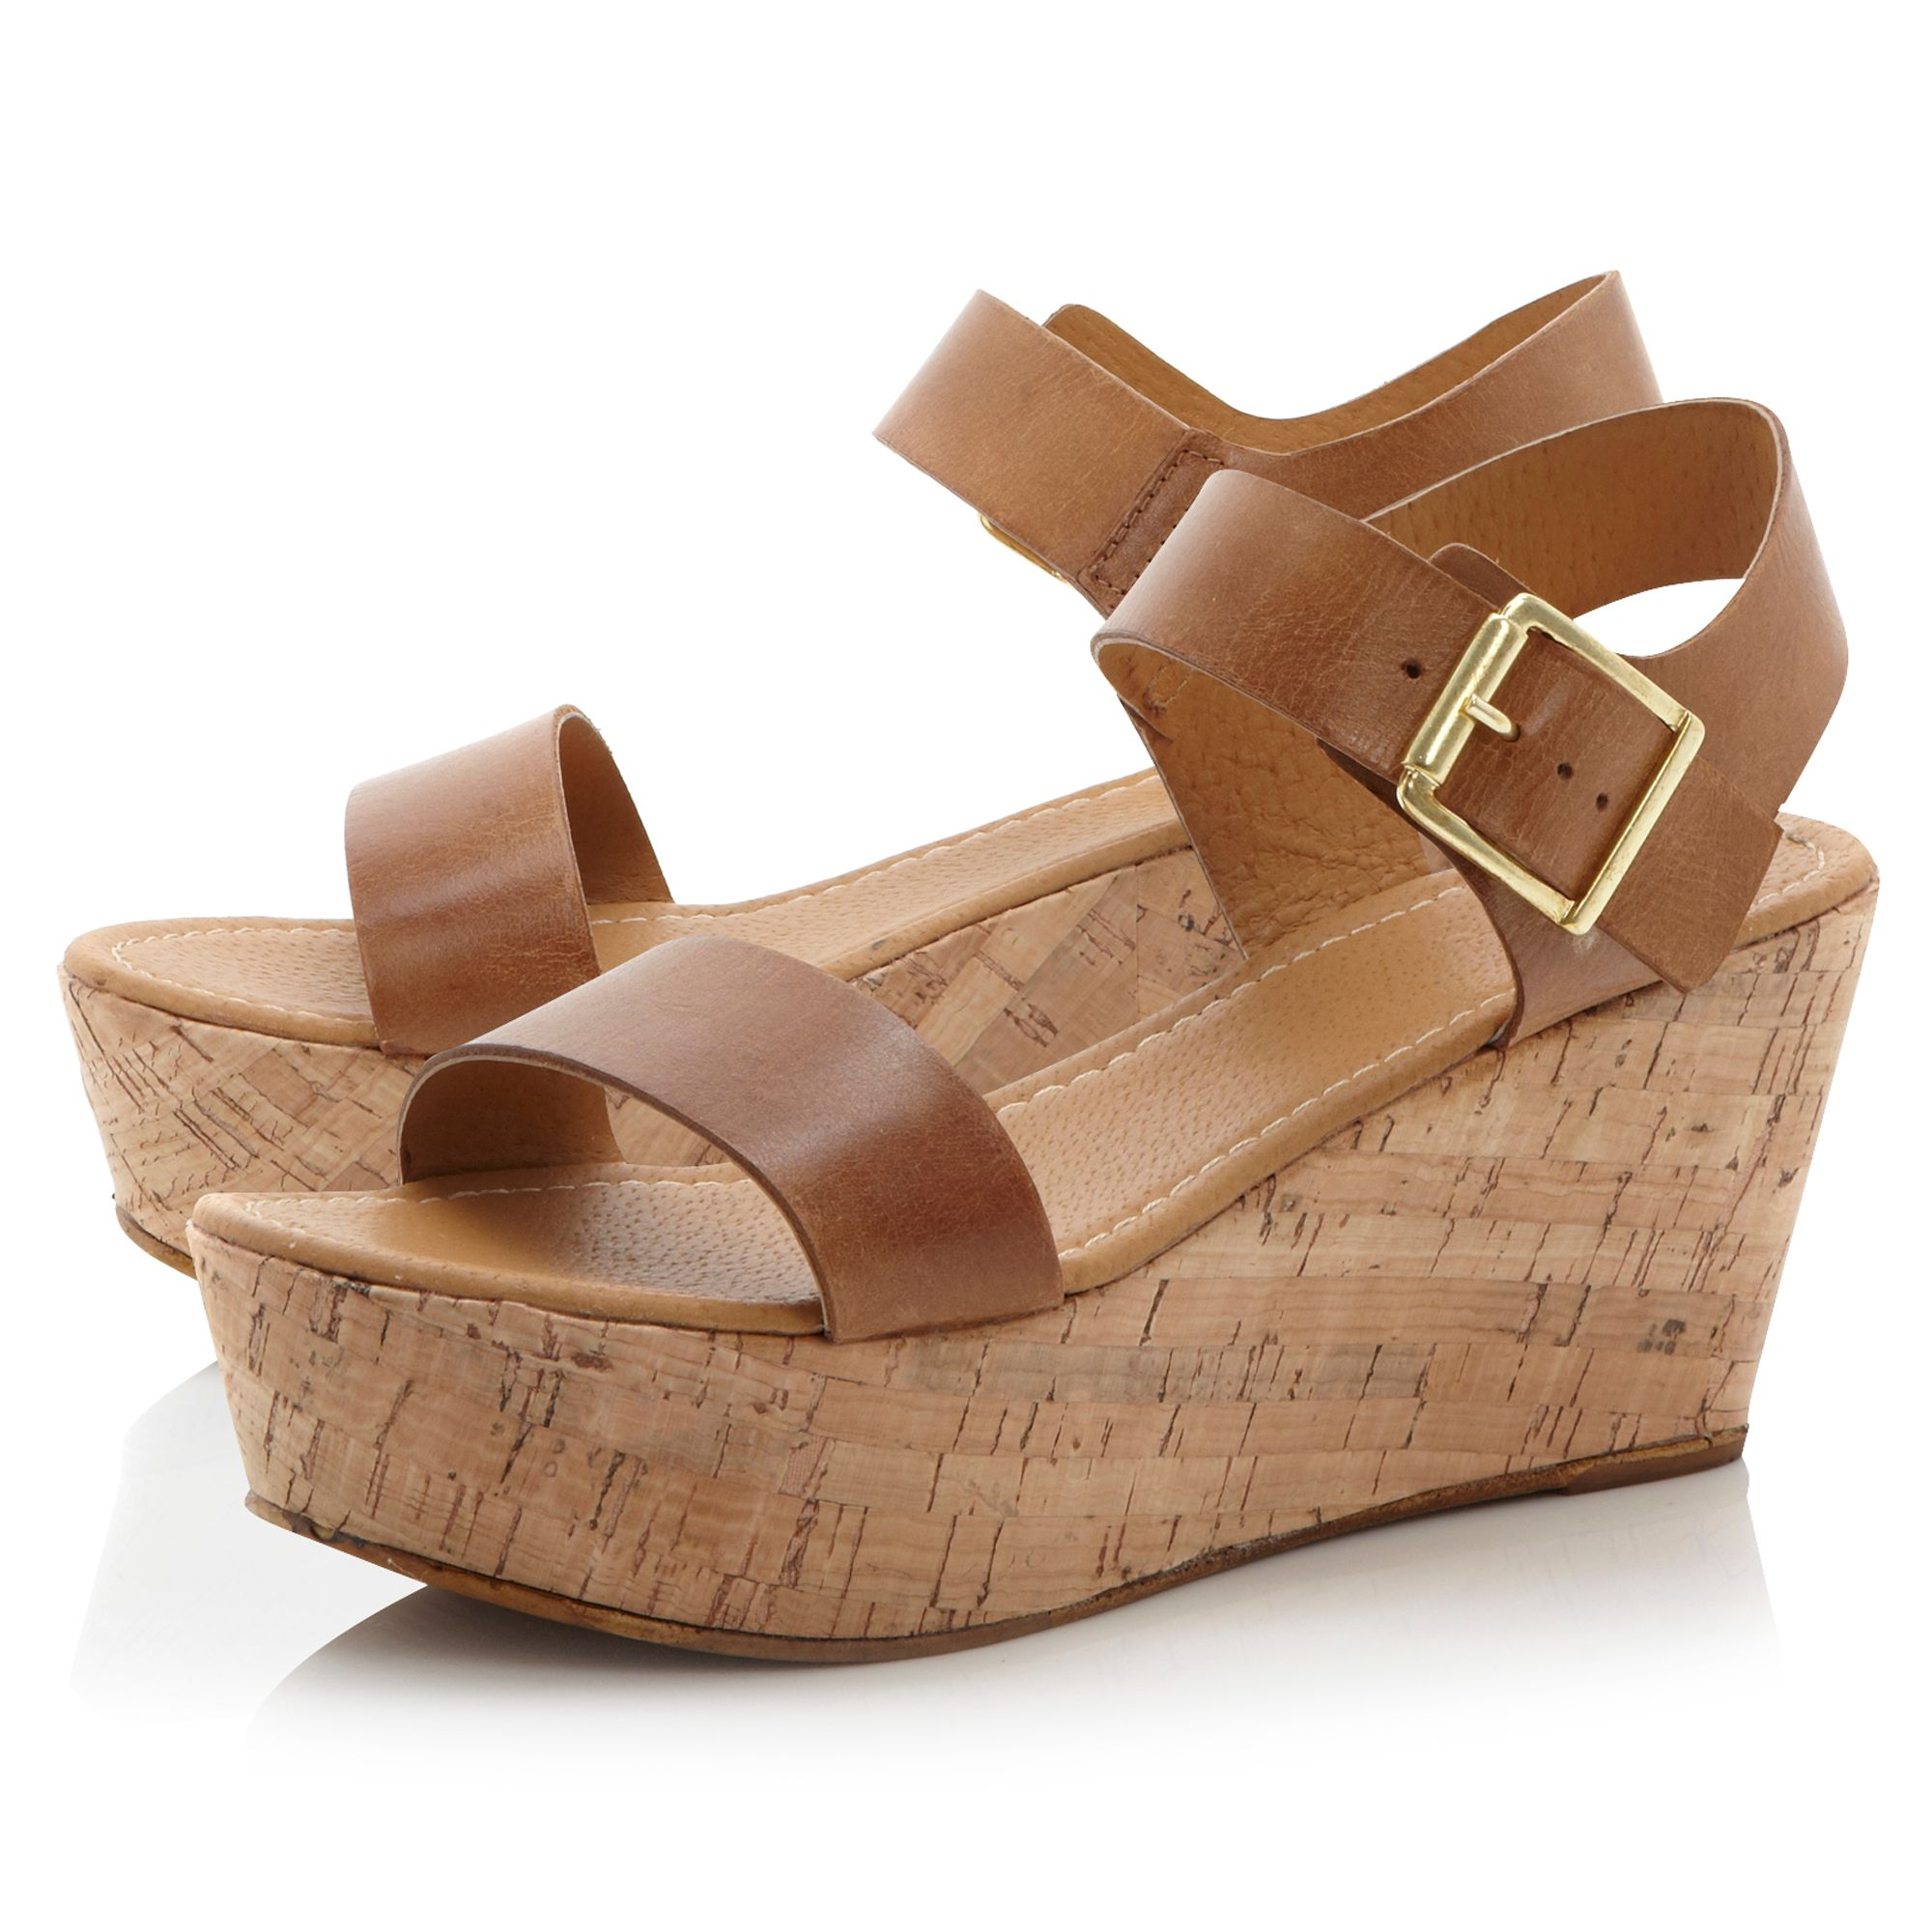 Golinda simple cork wedge sandals